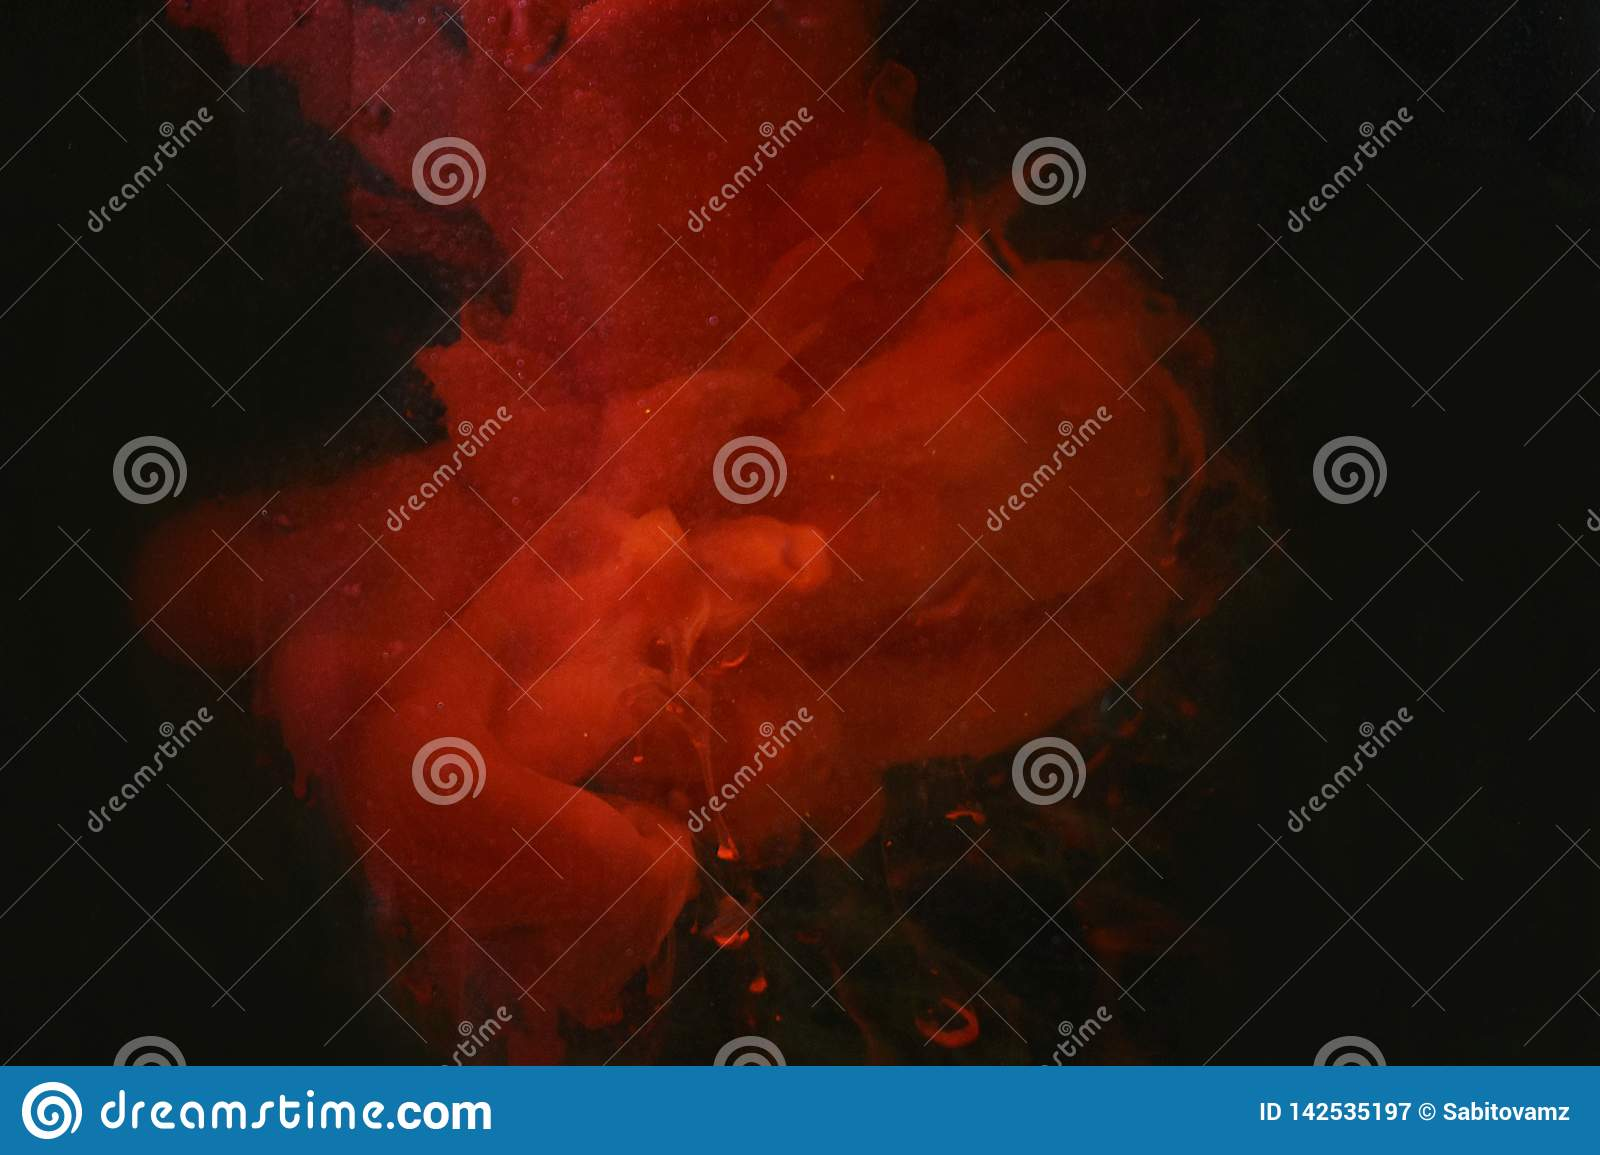 Spots of red paint in water dark background texture closeup macro